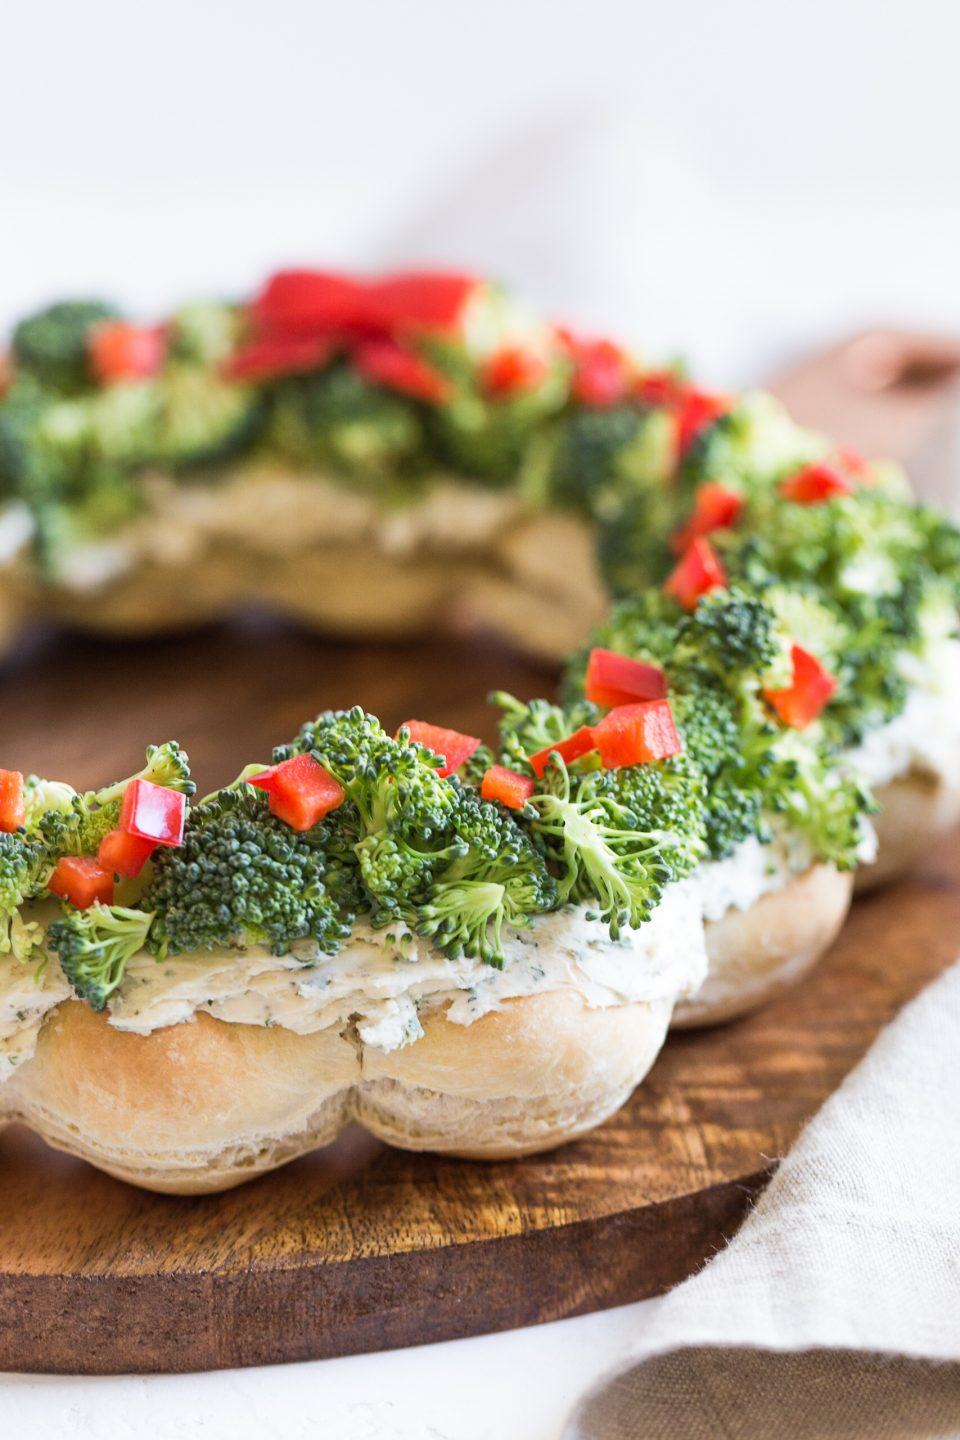 Dough balls that are cooked in the shape of a wreath. Then topped with a cream cheese and ranch mixture and sprinkled with chopped broccoli and red pepper.